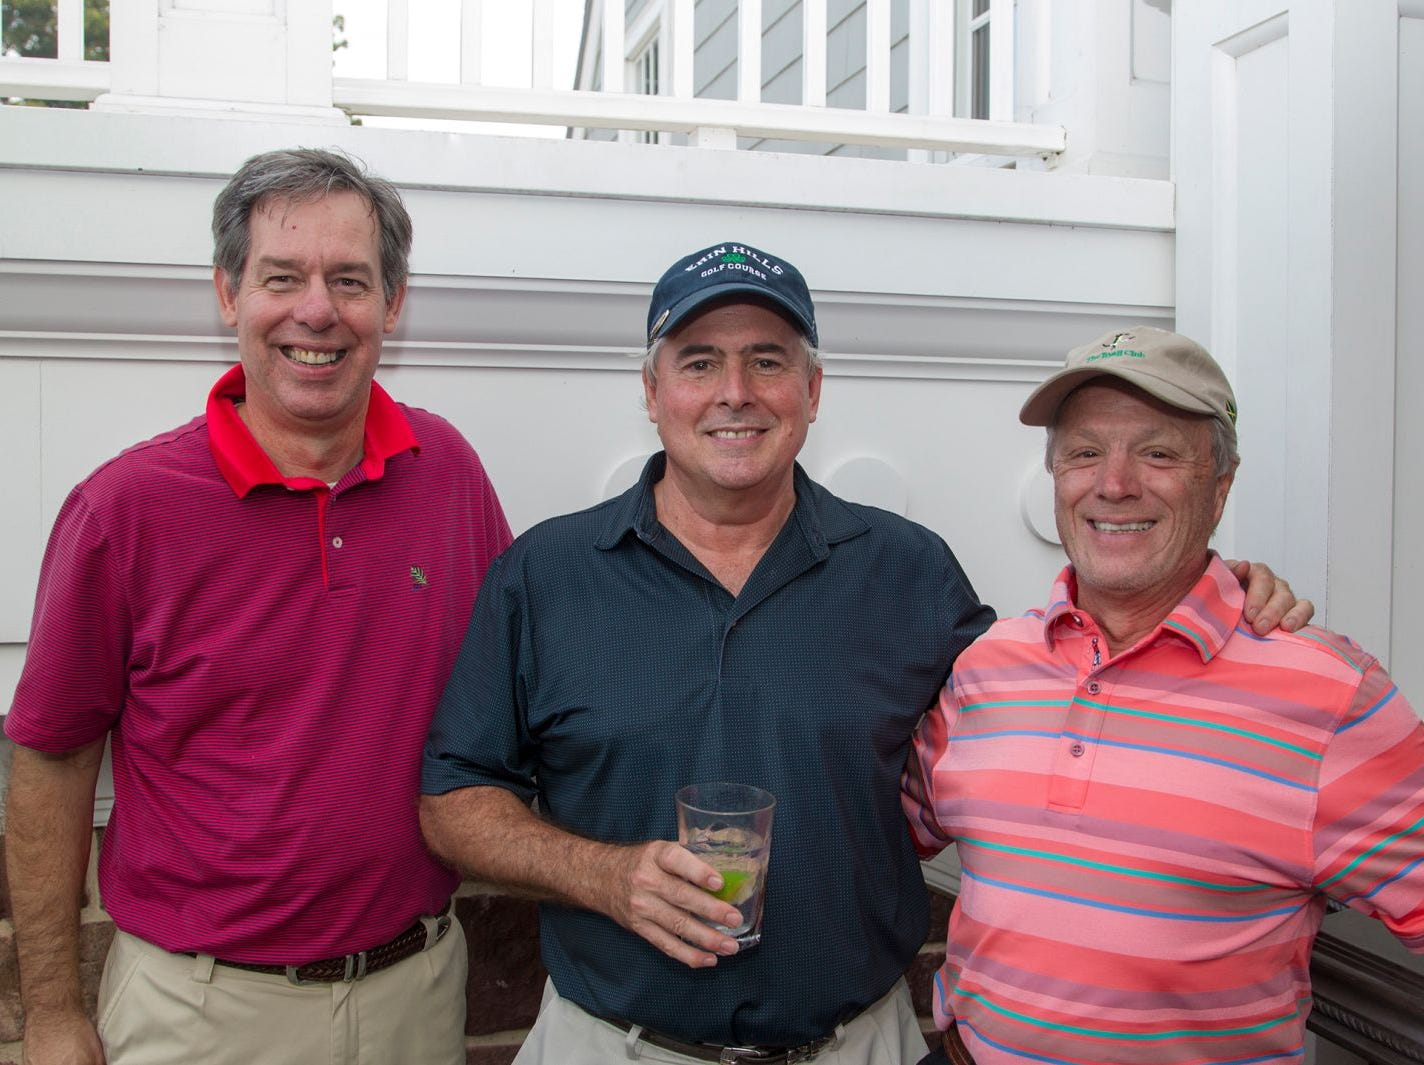 Bob Zak, Peter Gould, Ray Ruffino. Institute for Educational Achievement held its 23rd annual Golf Classic at Hackensack Golf Club in Oradell. 10/01/2018